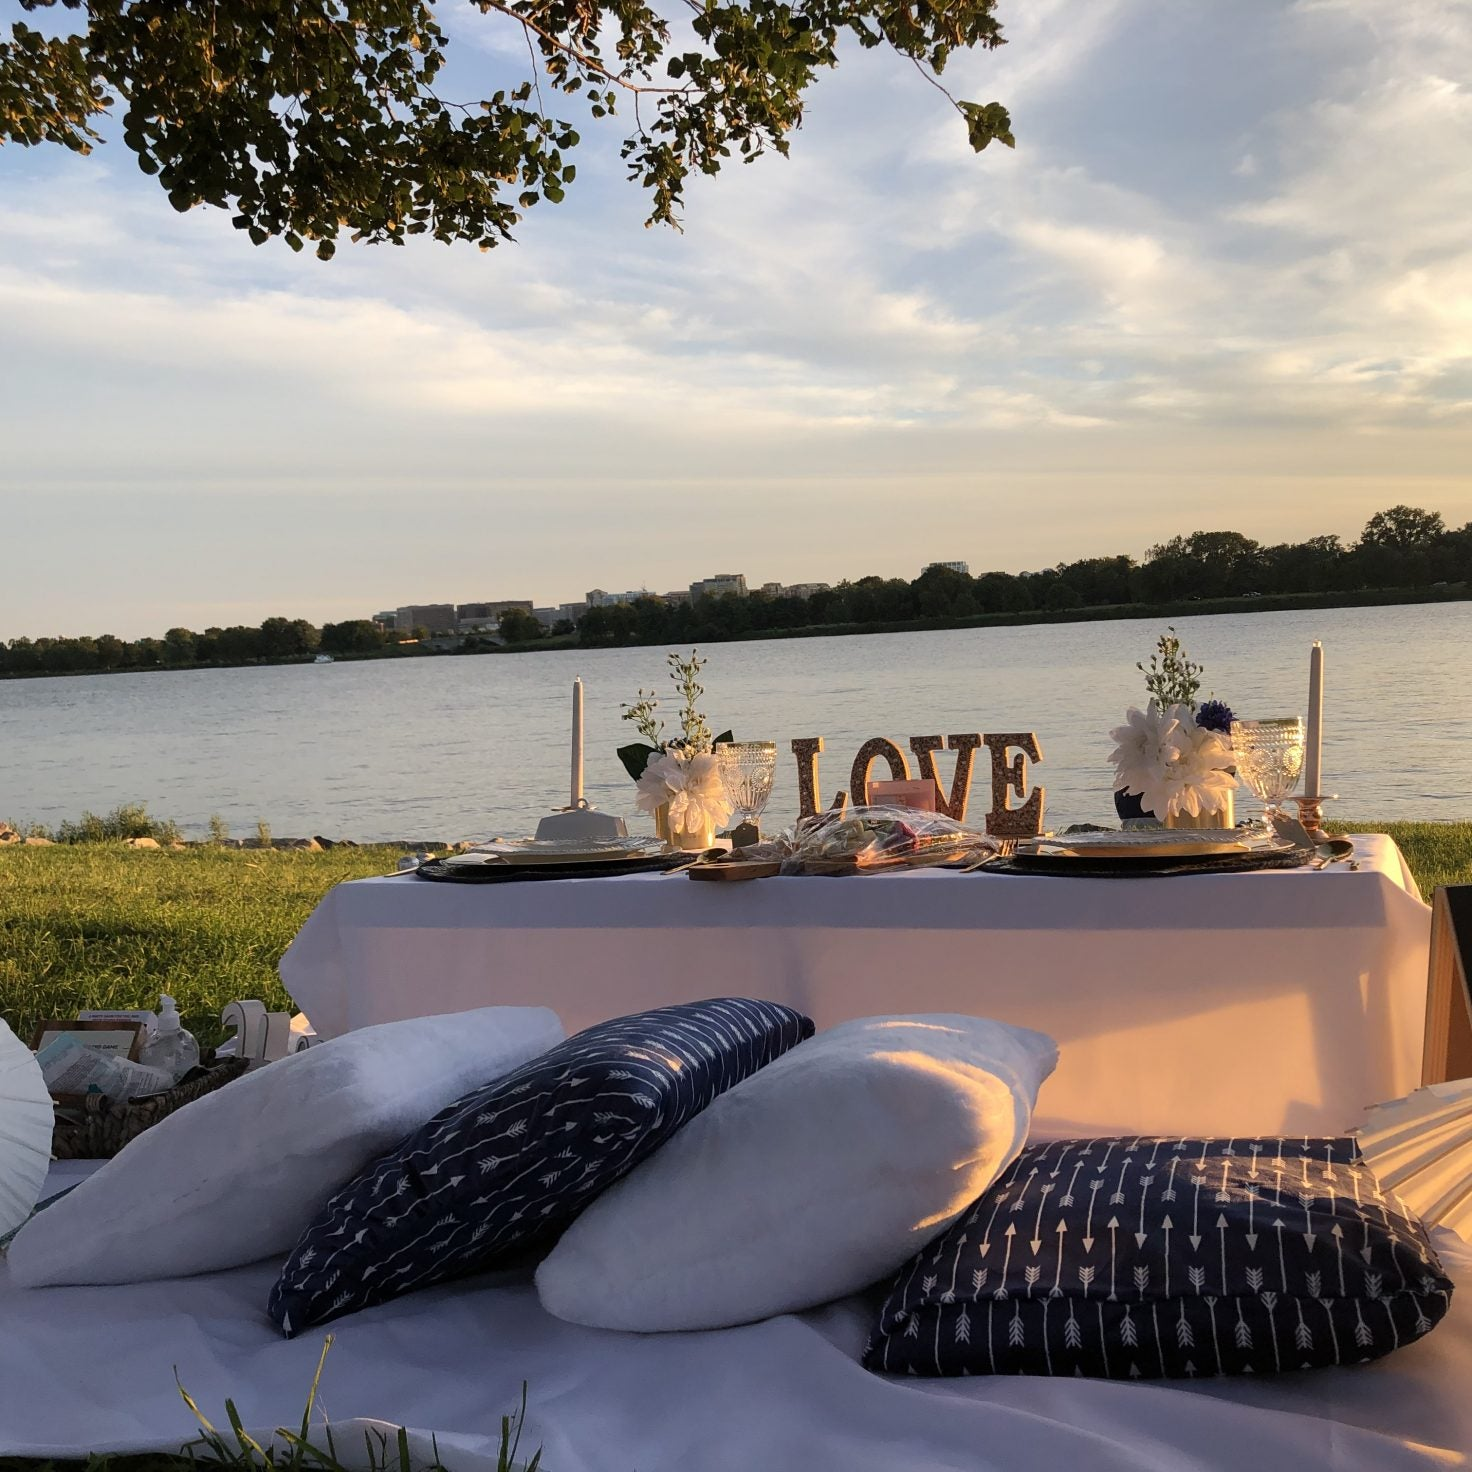 This Black-Owned Luxury Picnic Company Wants To Elevate Your Socially Distant Experiences